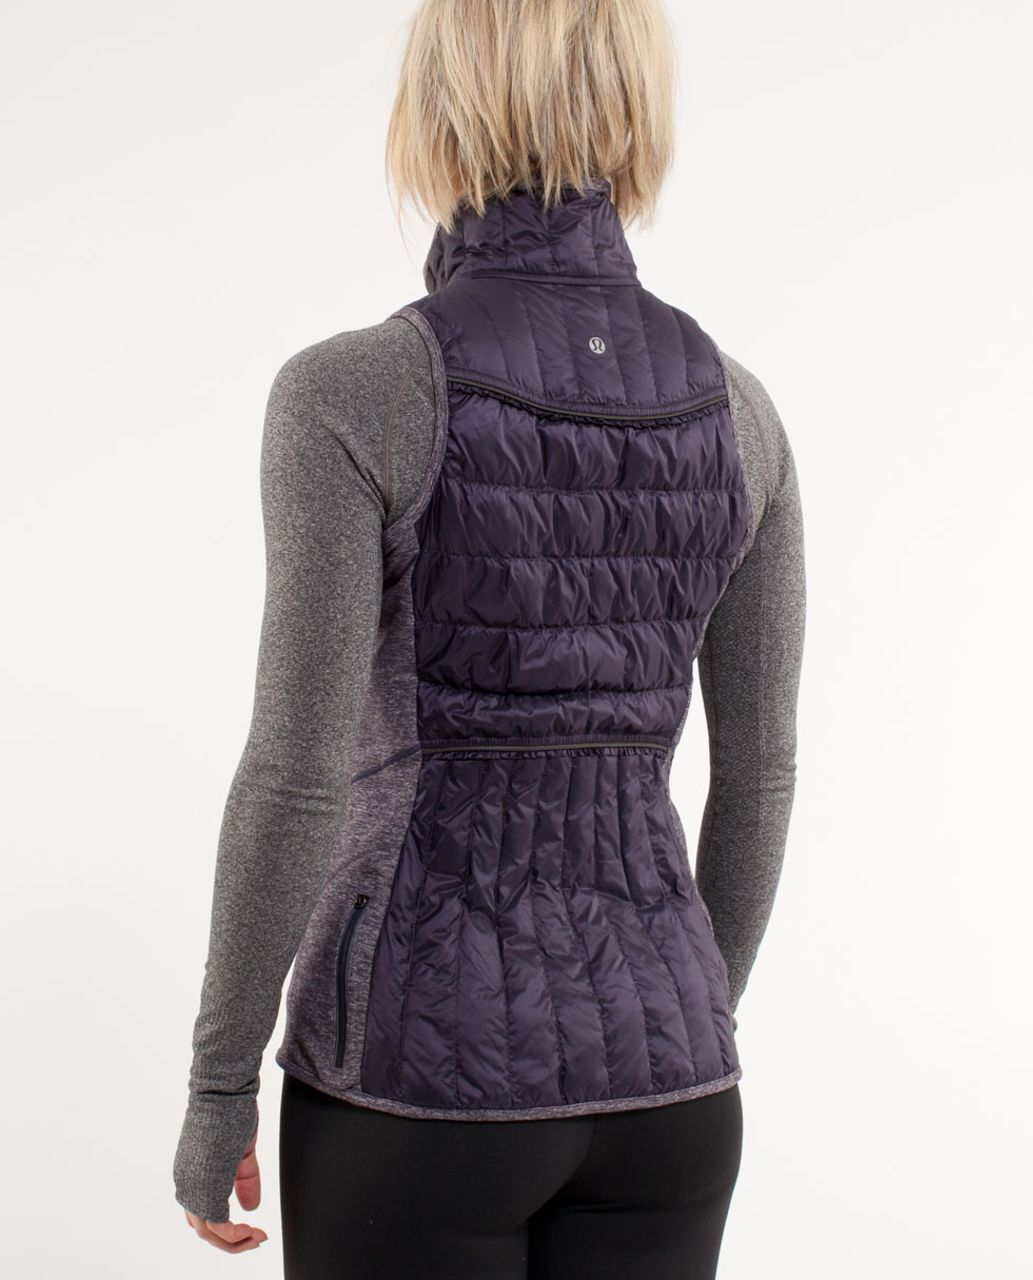 Lululemon Run:  Turn Around Vest - Black Swan /  Heathered Black Swan /  Grey Houndstooth